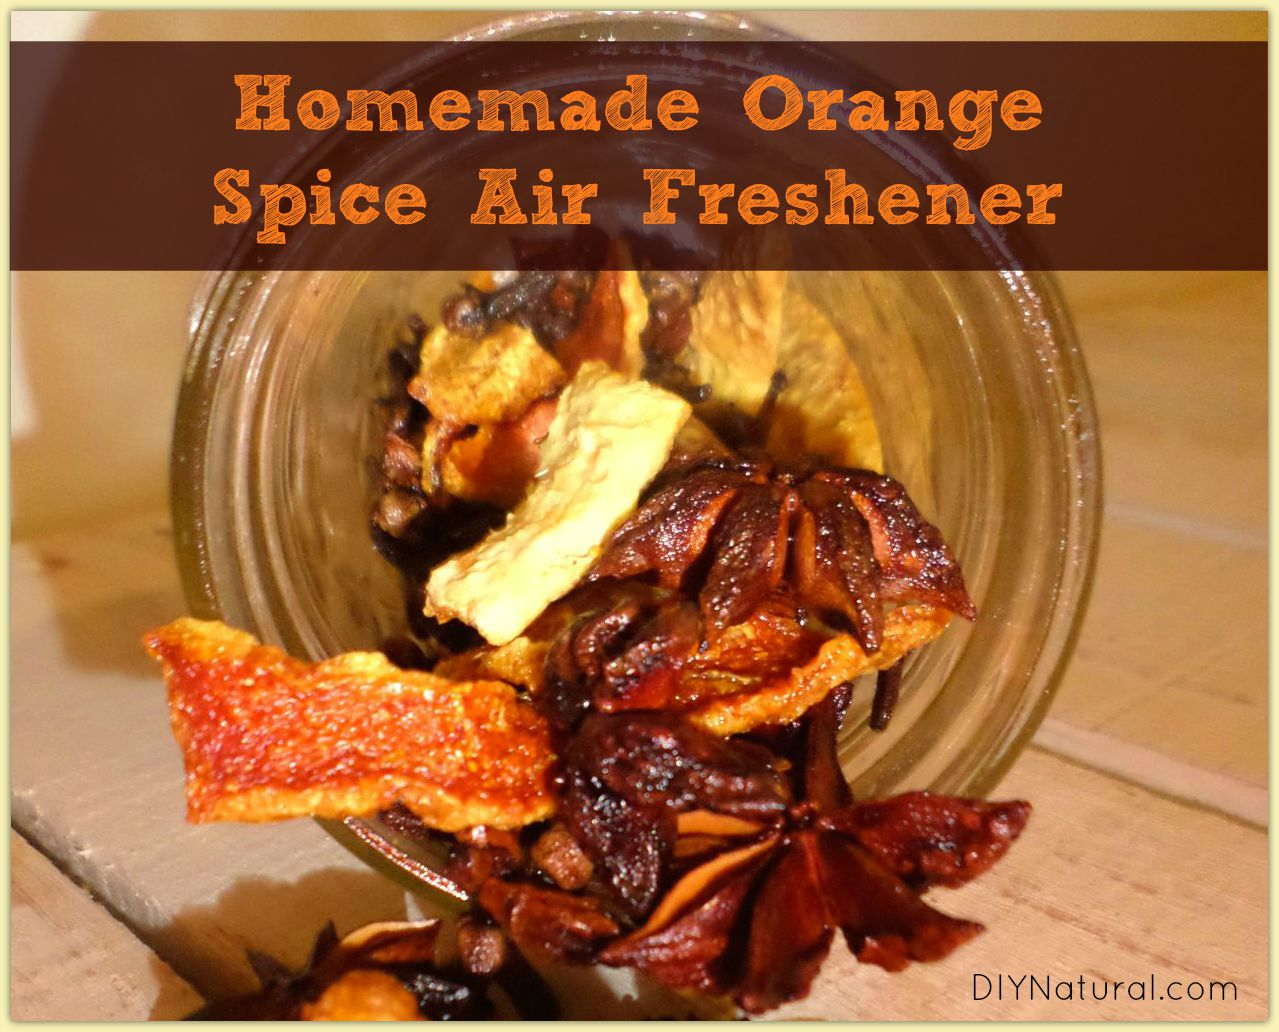 homemade air freshener a natural orange spice recipe